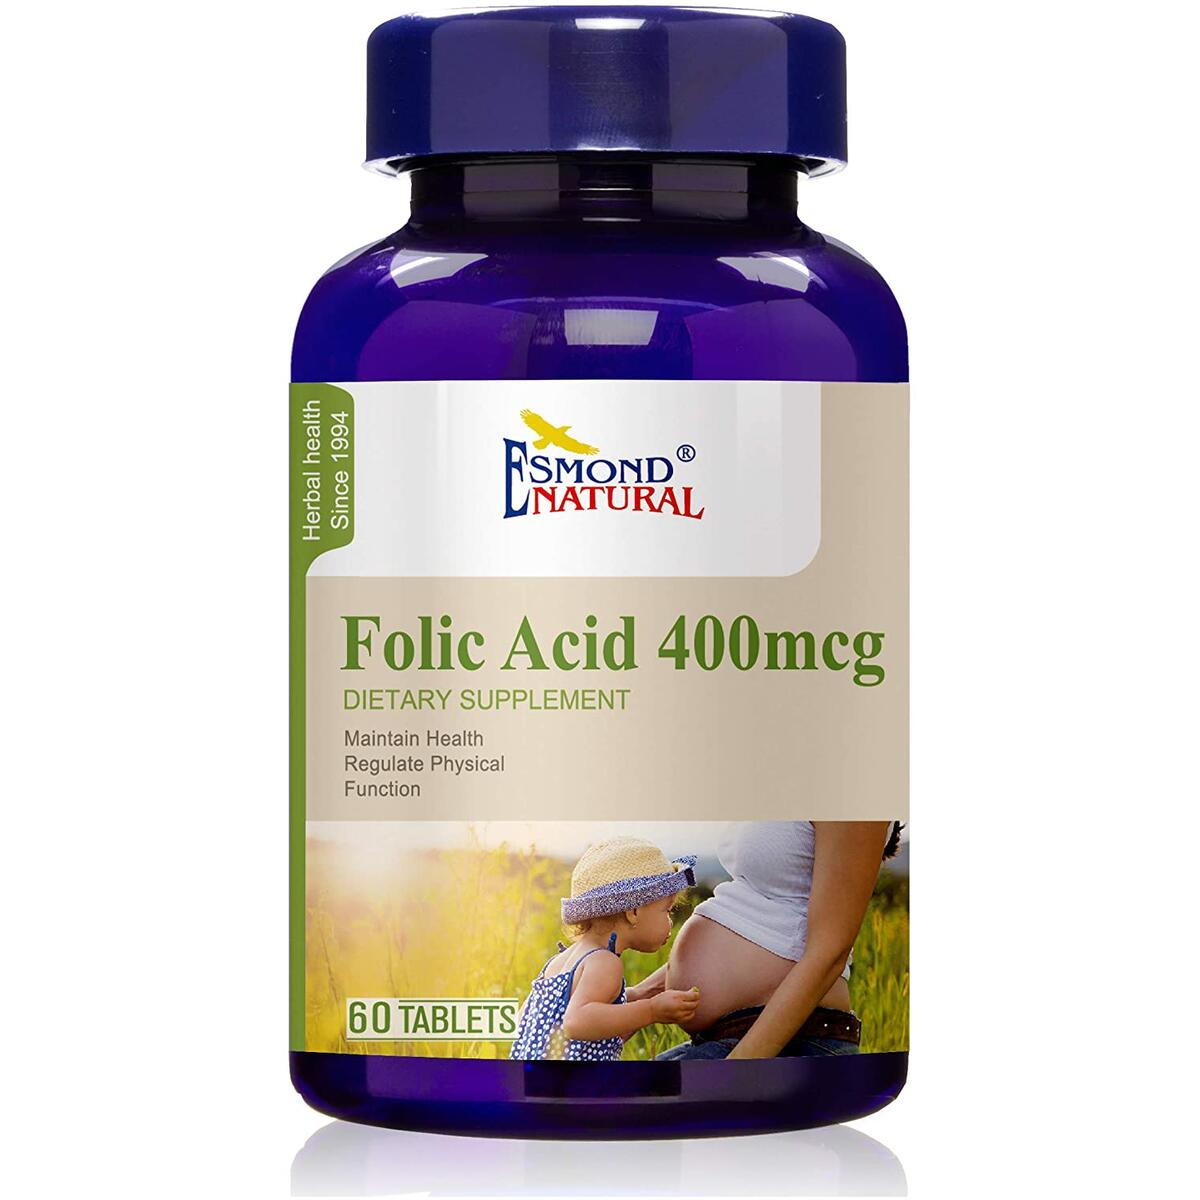 Esmond Natural: Folic Acid 400mcg (Pregnancy Support, Maintain Health Functions), GMP, Natural Product Assn Certified, Made in USA-400mcg, 60 Tablets